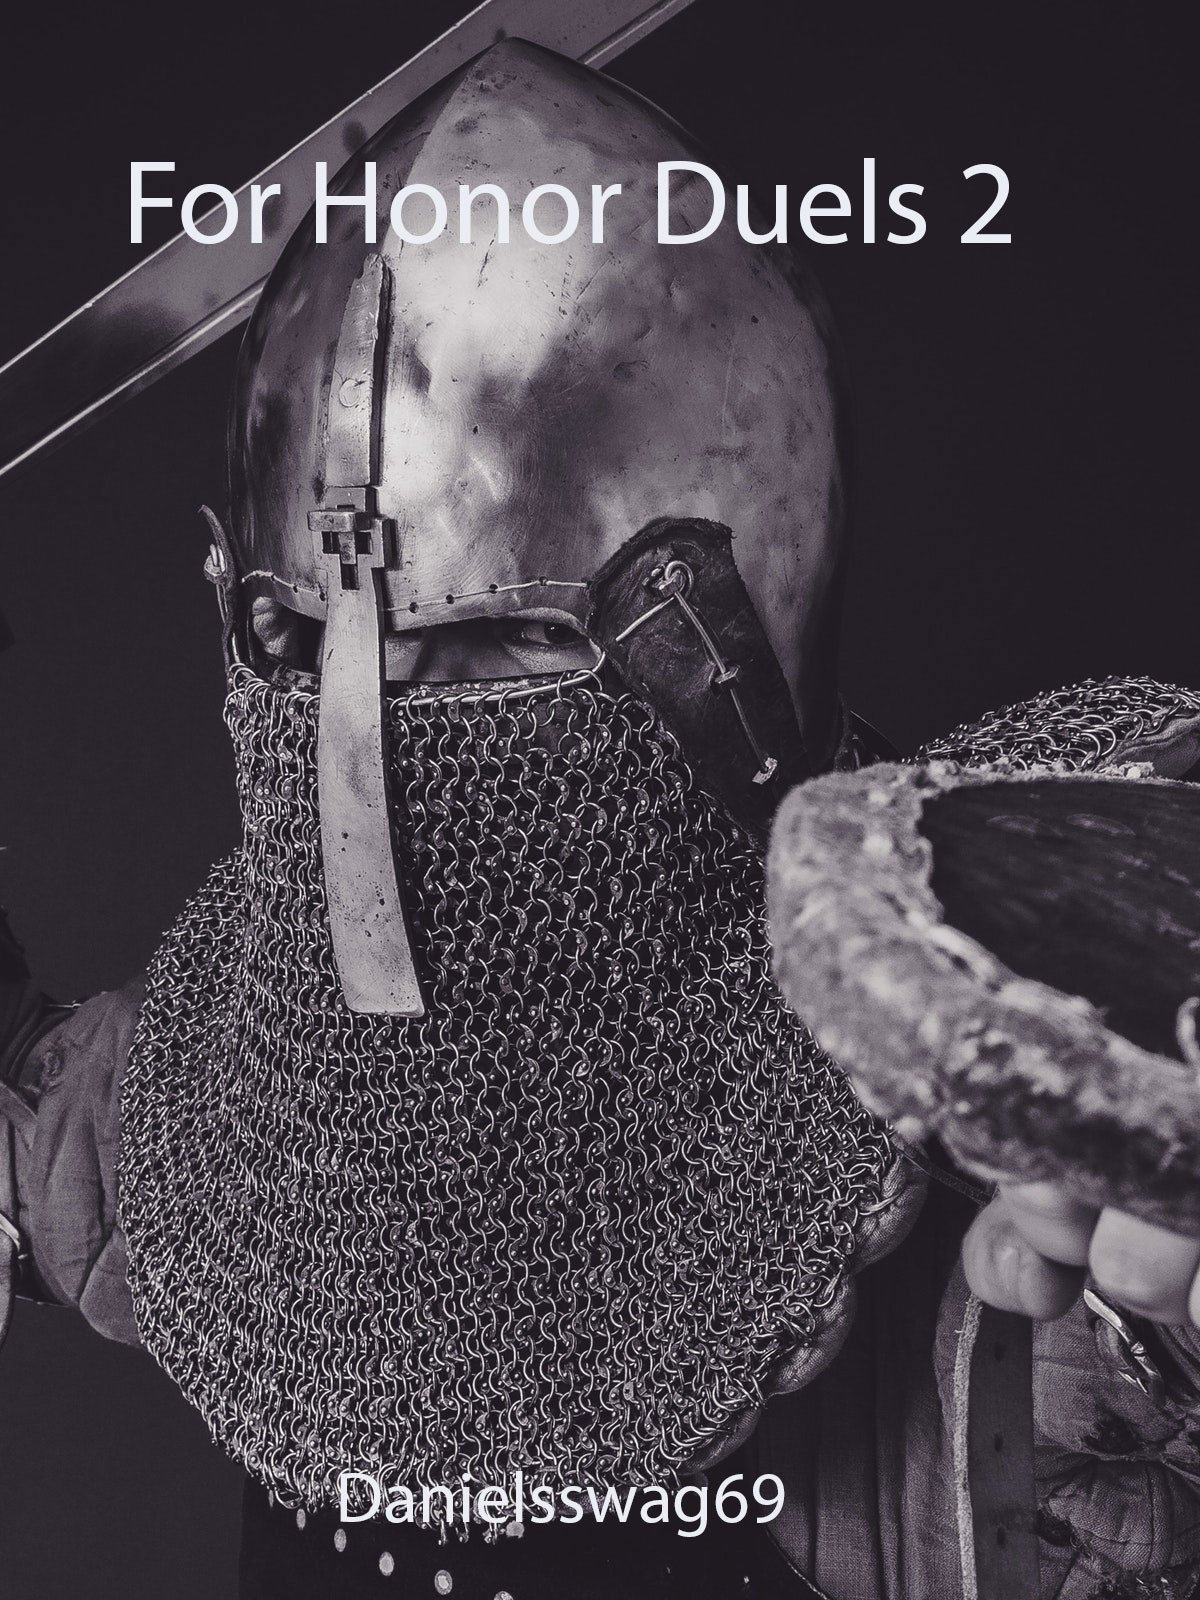 Clip: For Honor Duels 2